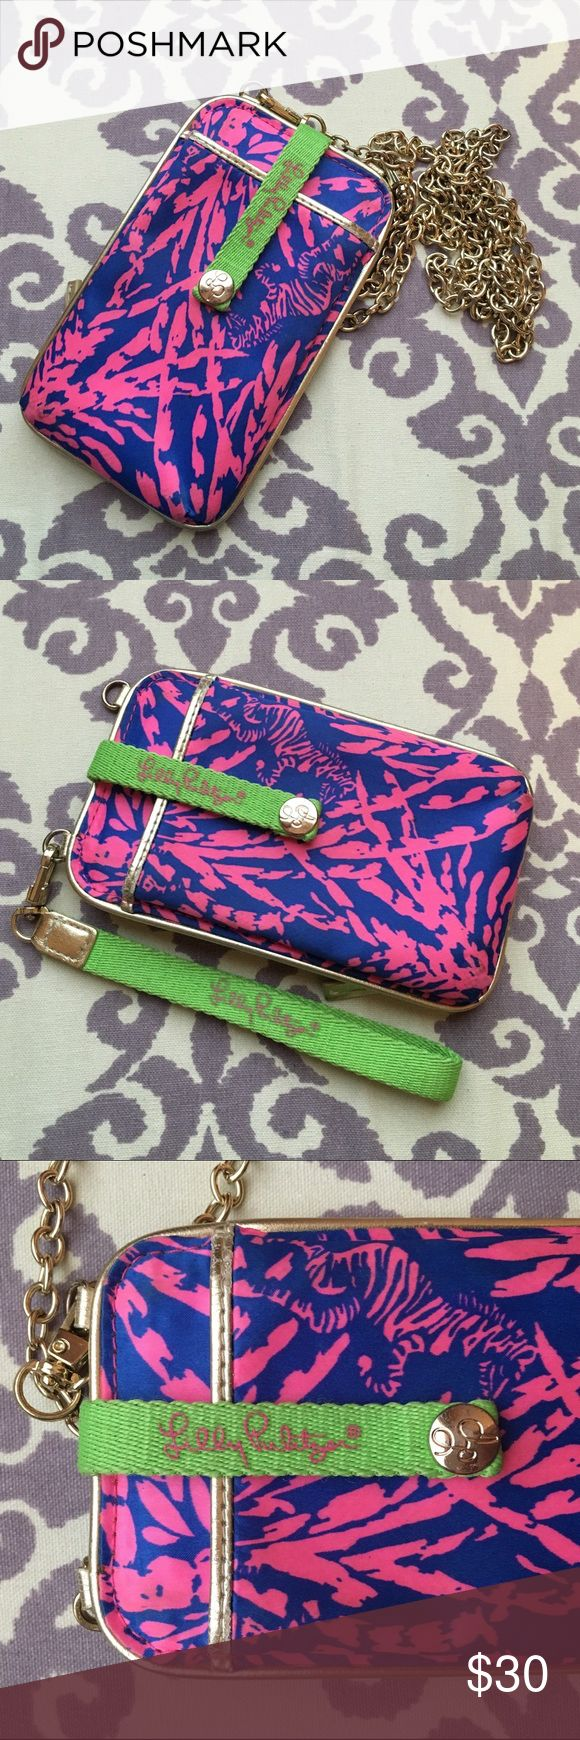 "Lilly Pulitzer Wristlet/Crossbody This versatile little guy is an easy accessory for any outing.  //  Print is Sapphire Blue ""Rollin In The Grass."" Used only a few times. Has an ID window and coin/money/card slot. Comes with a wristlet and gold chain for turning it into a small crossbody measuring at 54"" (27"" when doubled up/worn). There's a place to hold your phone (fits iPhone 4/4s/5/5s with case on, fits iPhone 6/6s when bare or with a very slim case). Lilly Pulitzer Bags Clutches…"